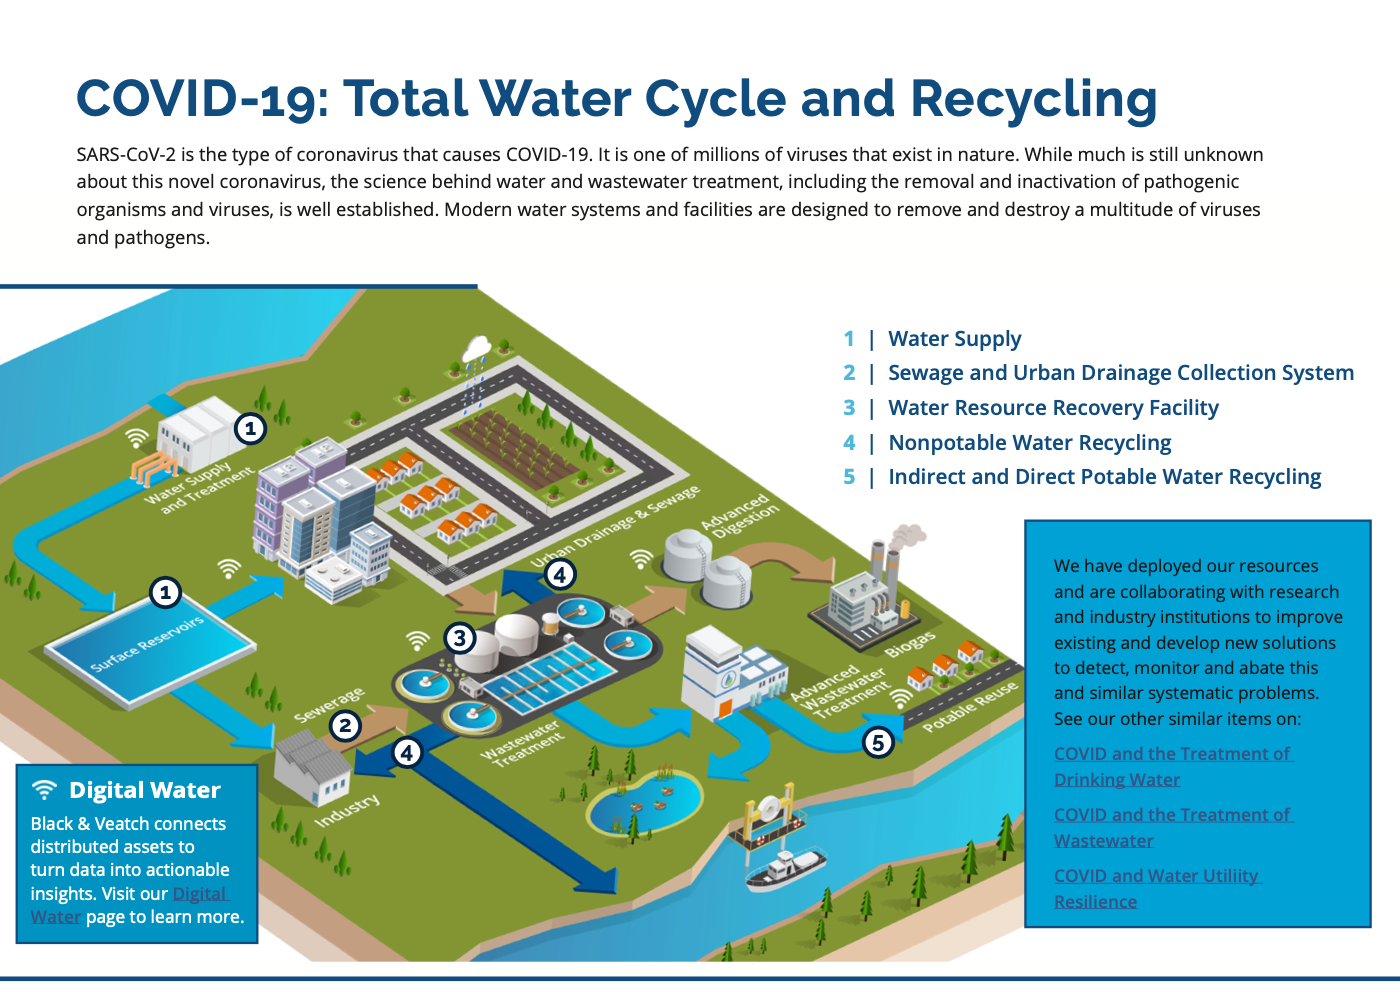 COVID-19: Total Water Cycle and Recycling